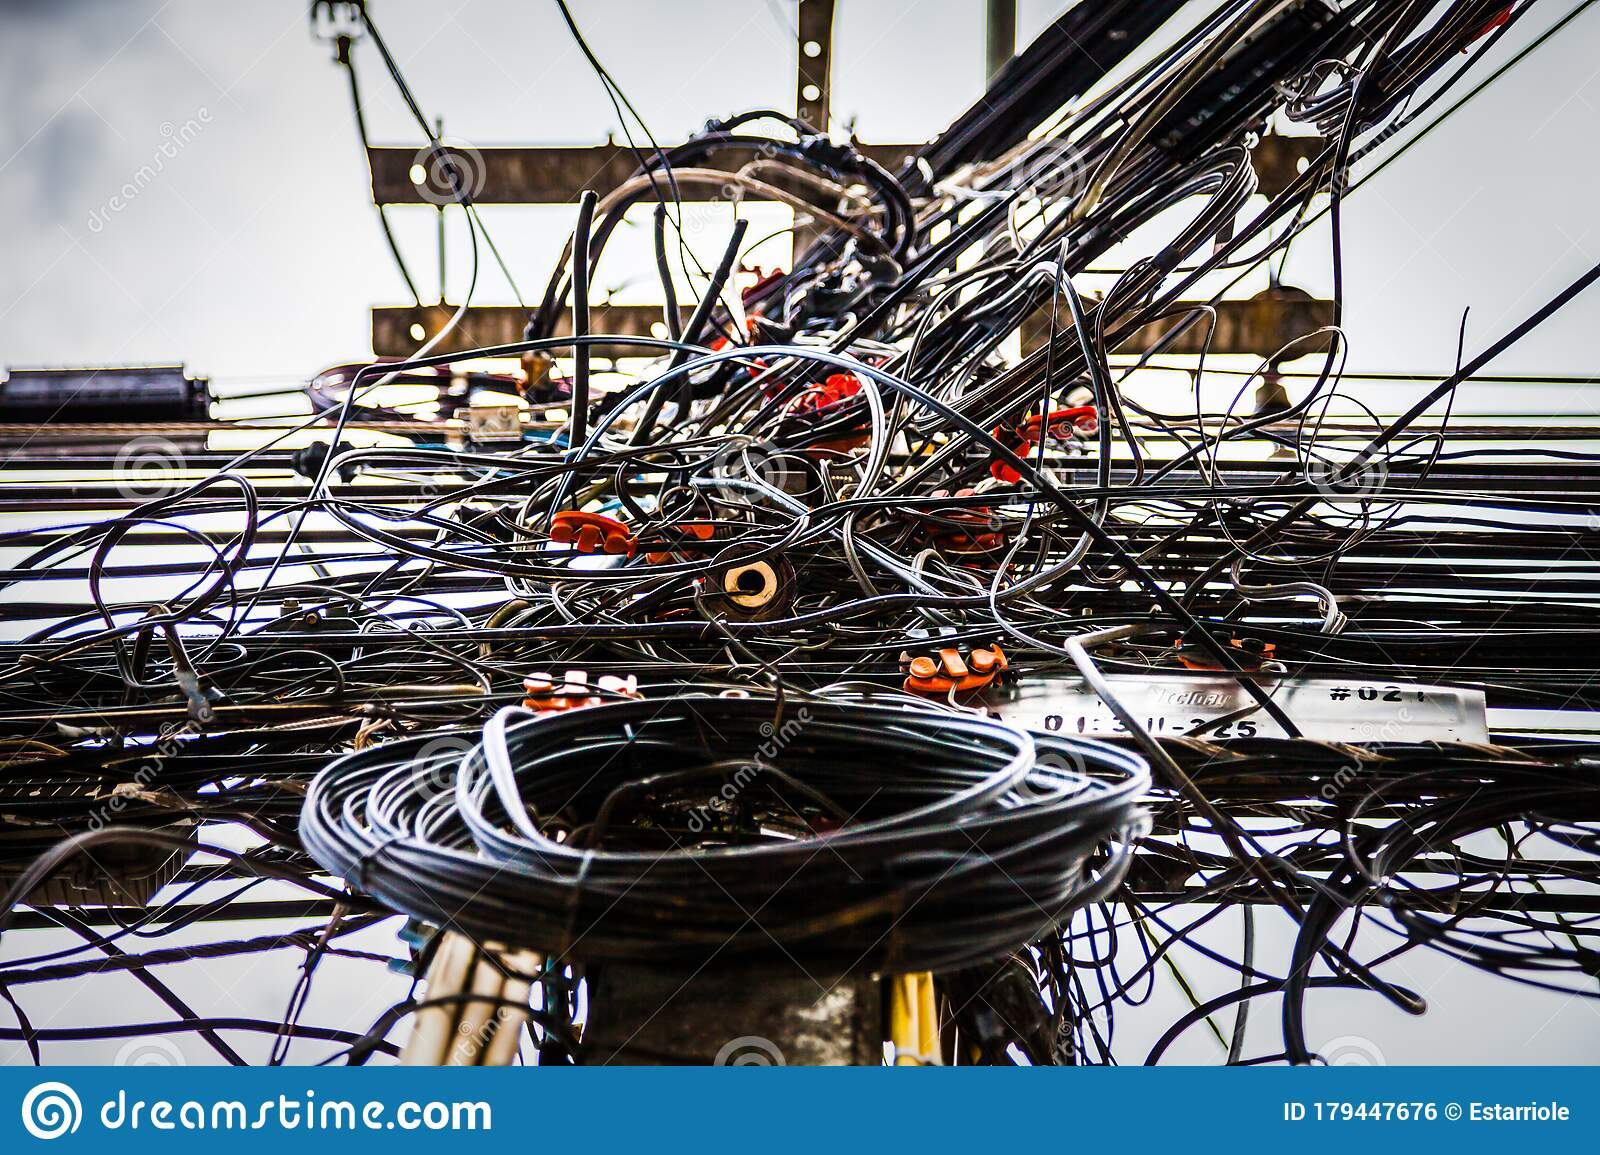 Tangled Electrical Wires On Urban Electric Pole Stock Photo Image Of Communication Safety 179447676